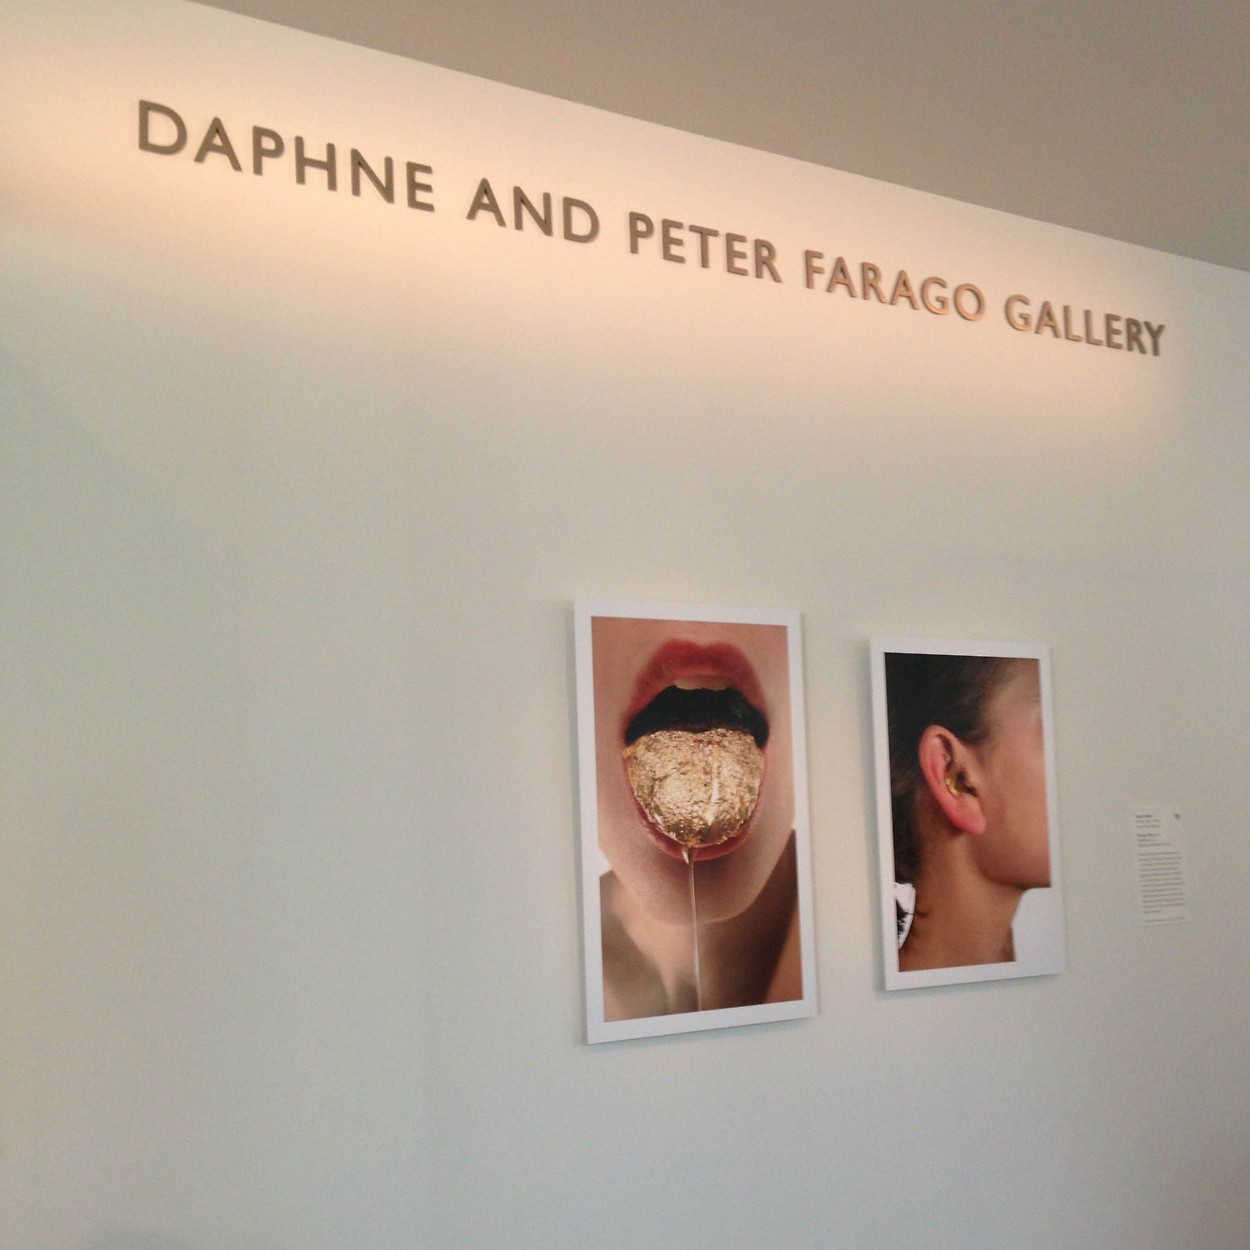 The Daphne Farago Gallery, MFA Boston, photos by Lauren Kalman